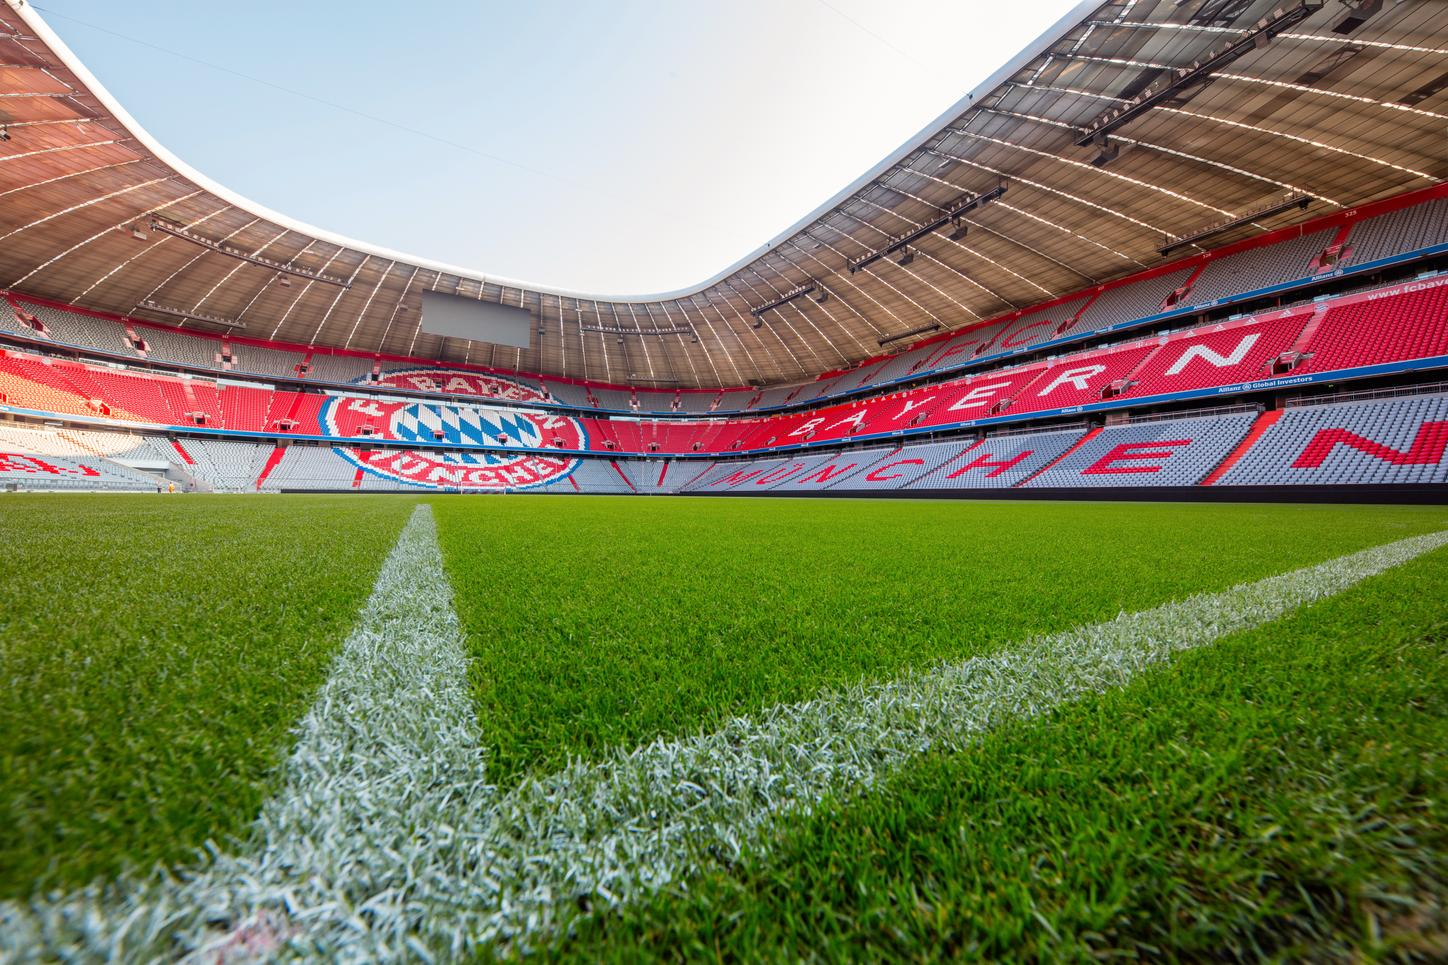 The picture shows the Allianz Arena from the inside.